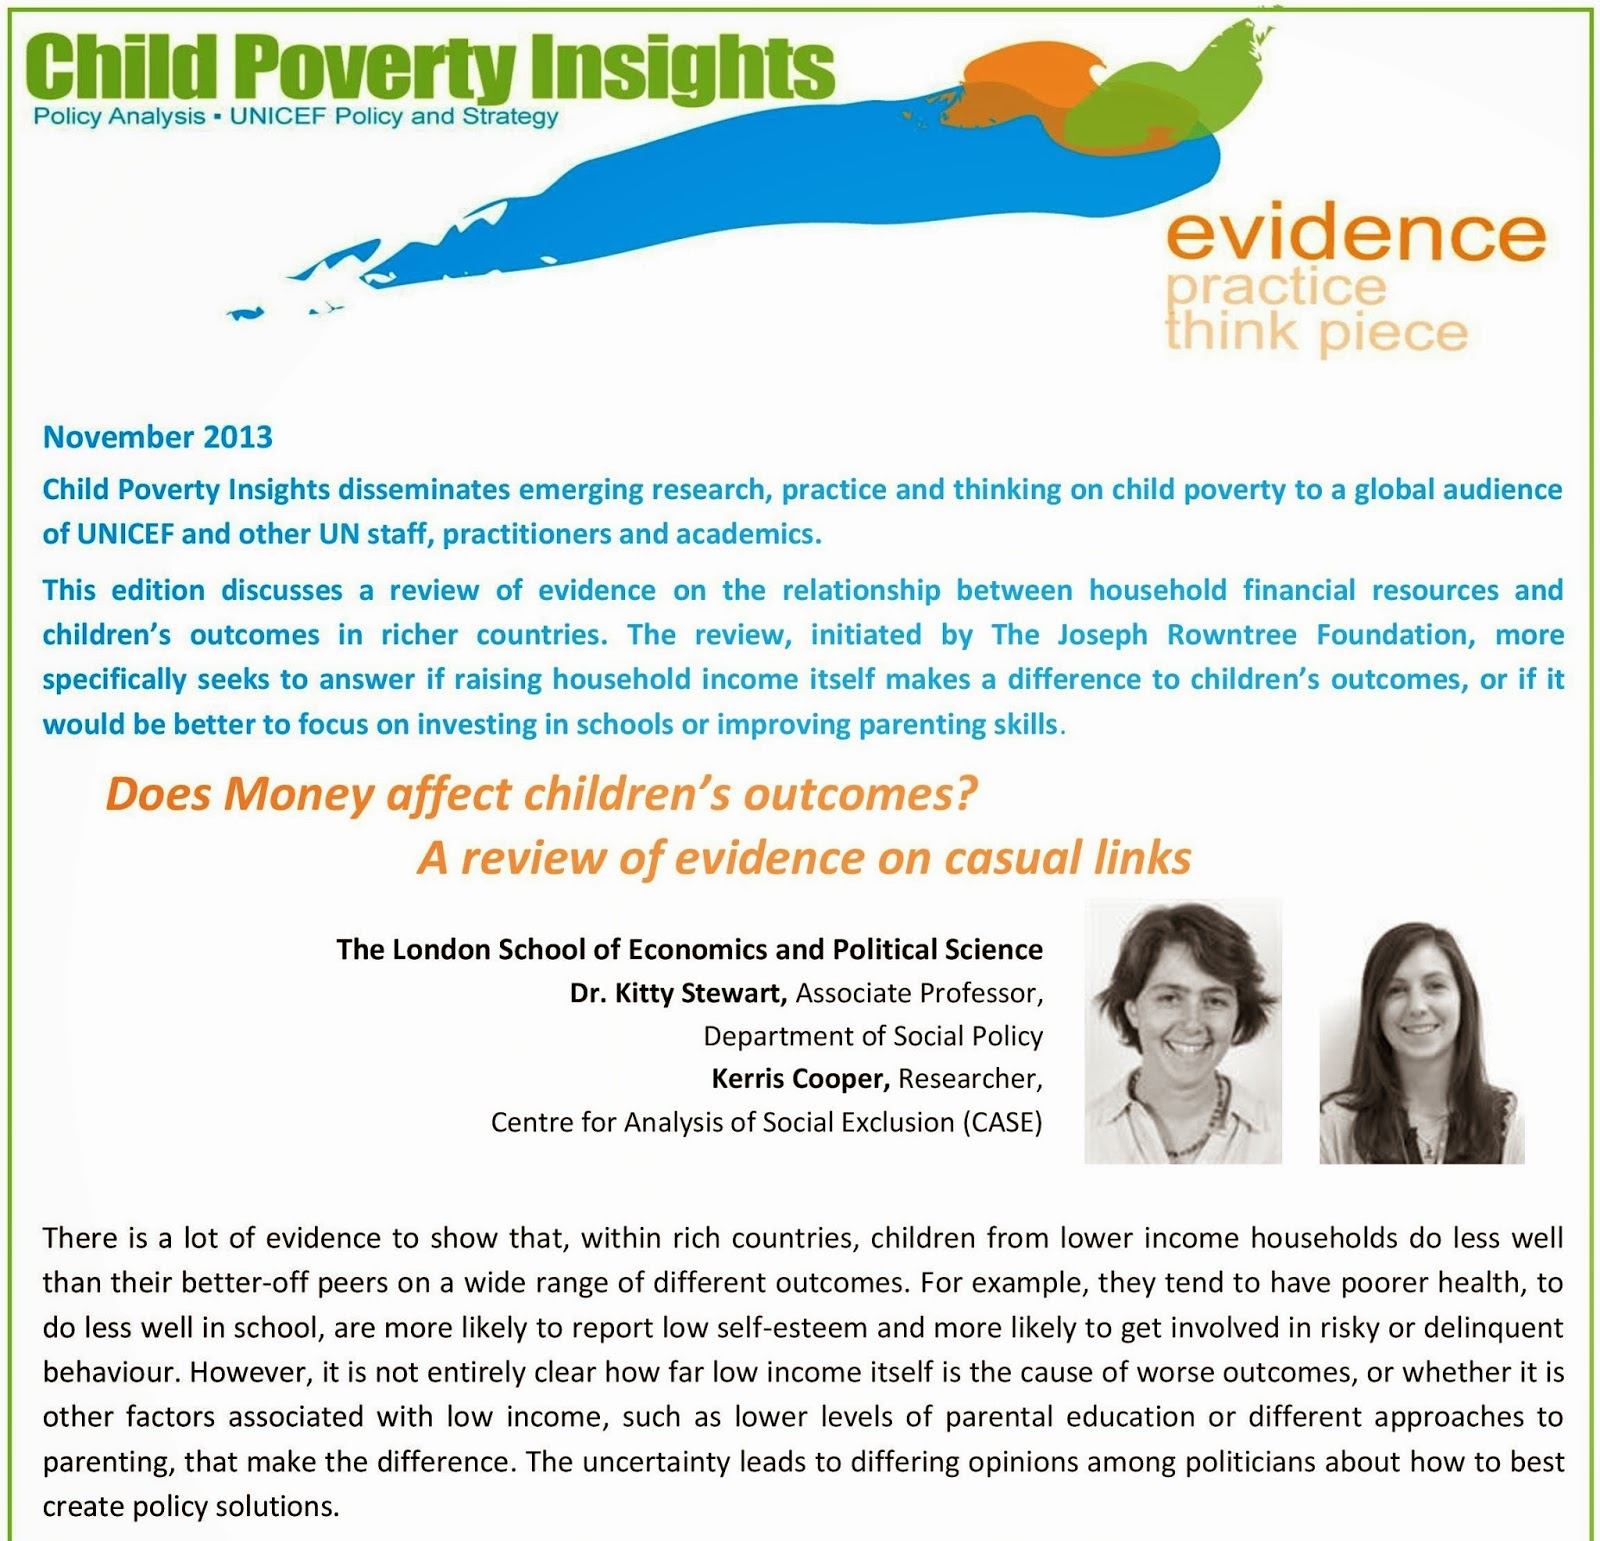 child poverty child poverty insights does money affect children s outcomes a review of evidence on casual links